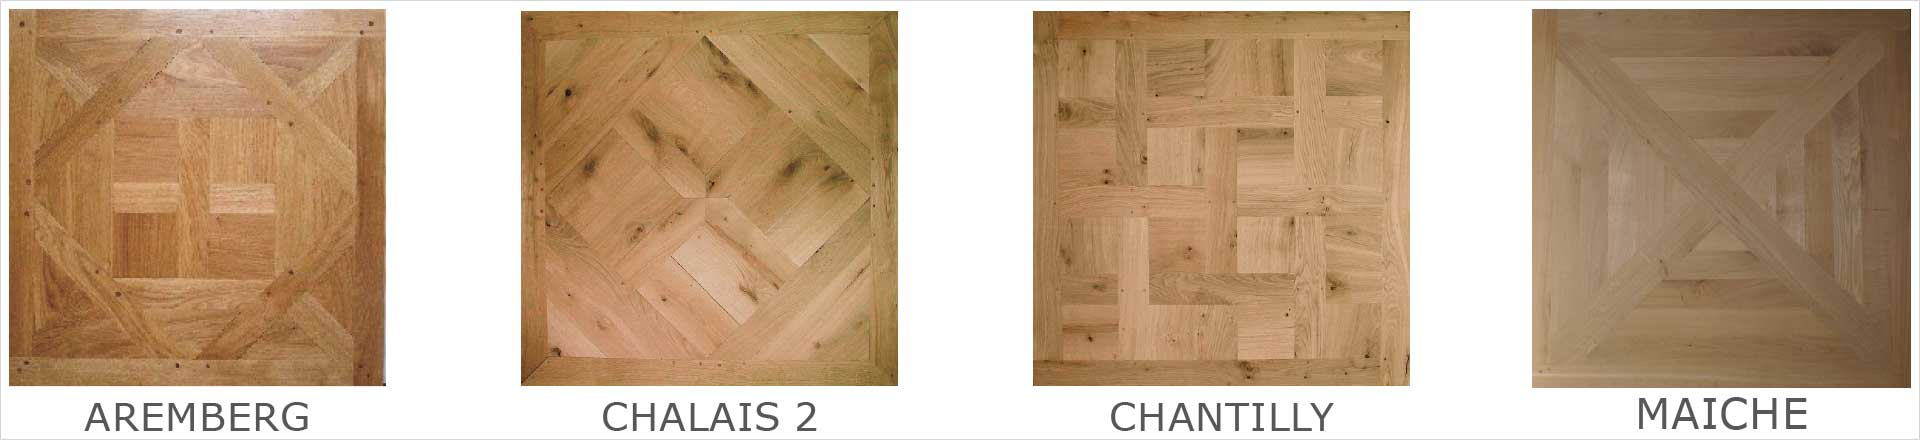 parquet la franaise latest parquet luindustrie franaise prpare son avenir face la crise with. Black Bedroom Furniture Sets. Home Design Ideas